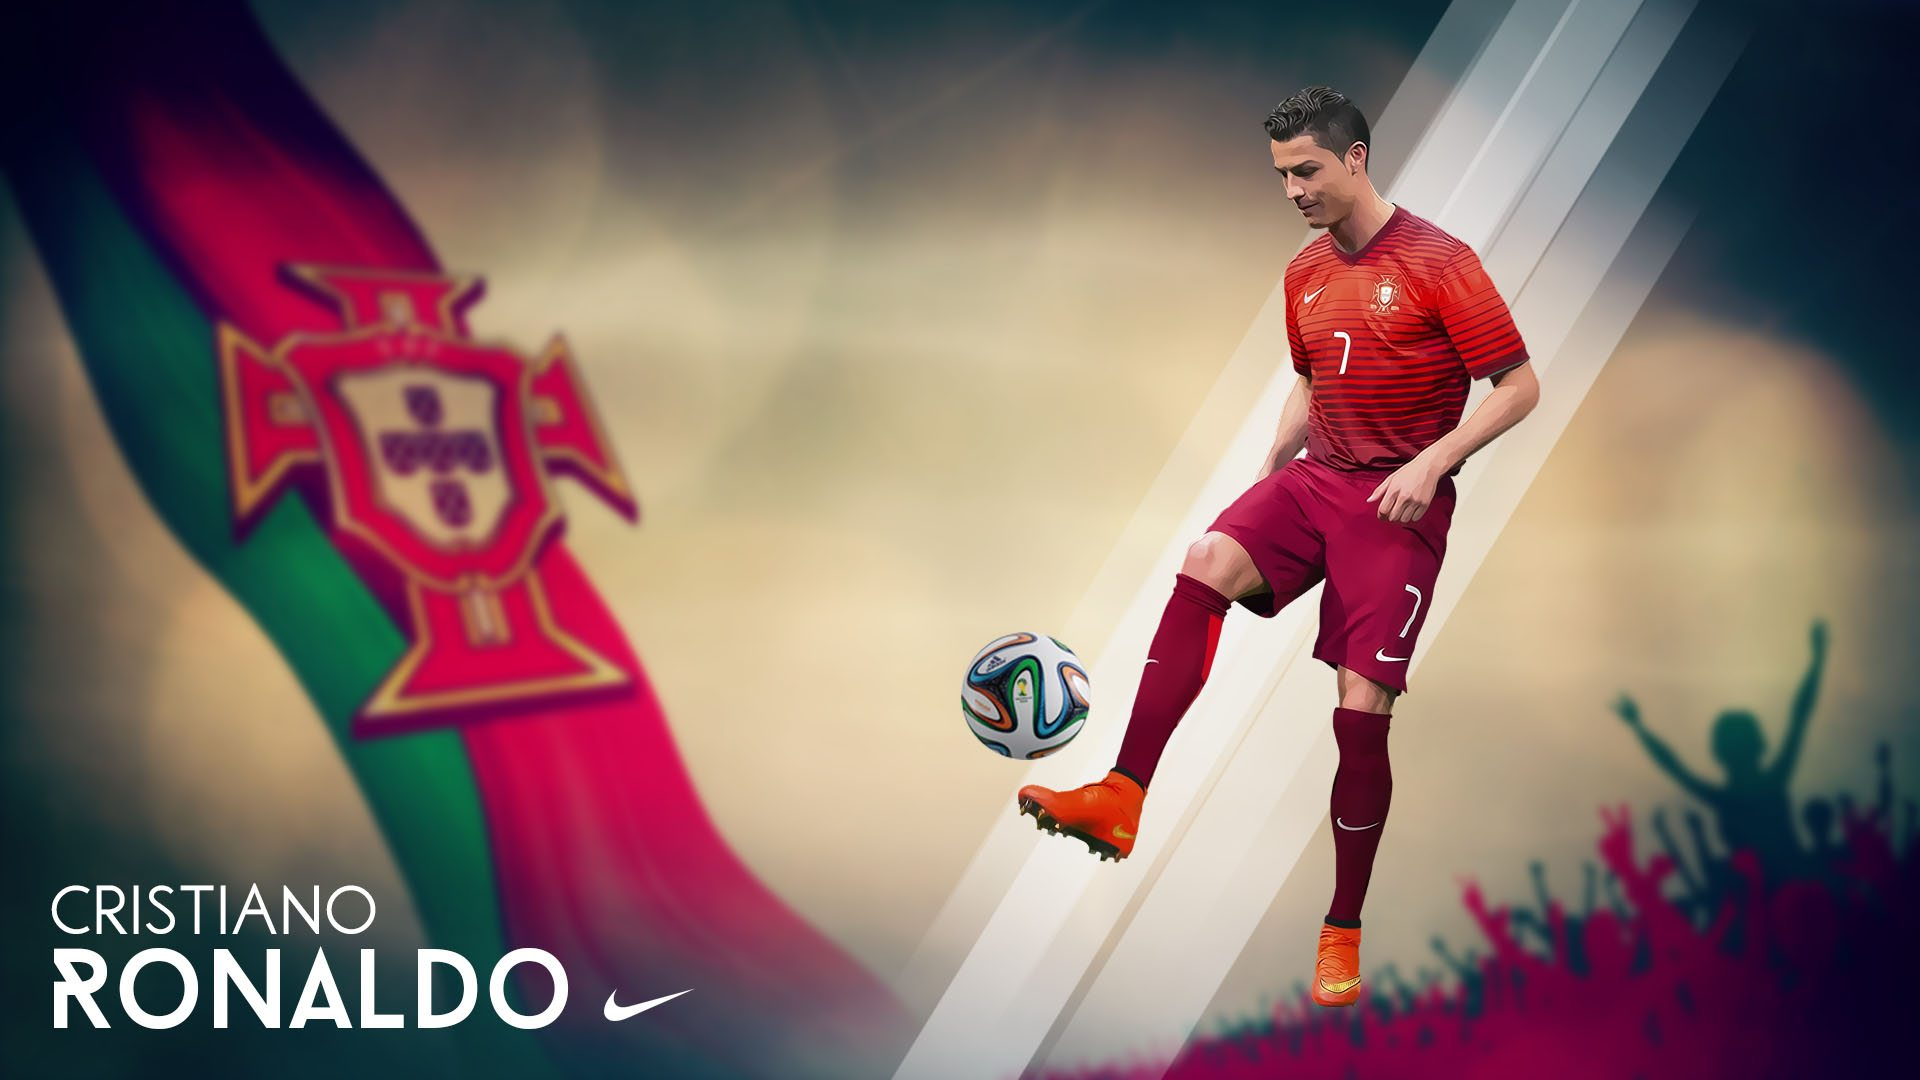 Cristiano Ronaldo 2018 World Cup Wallpapers